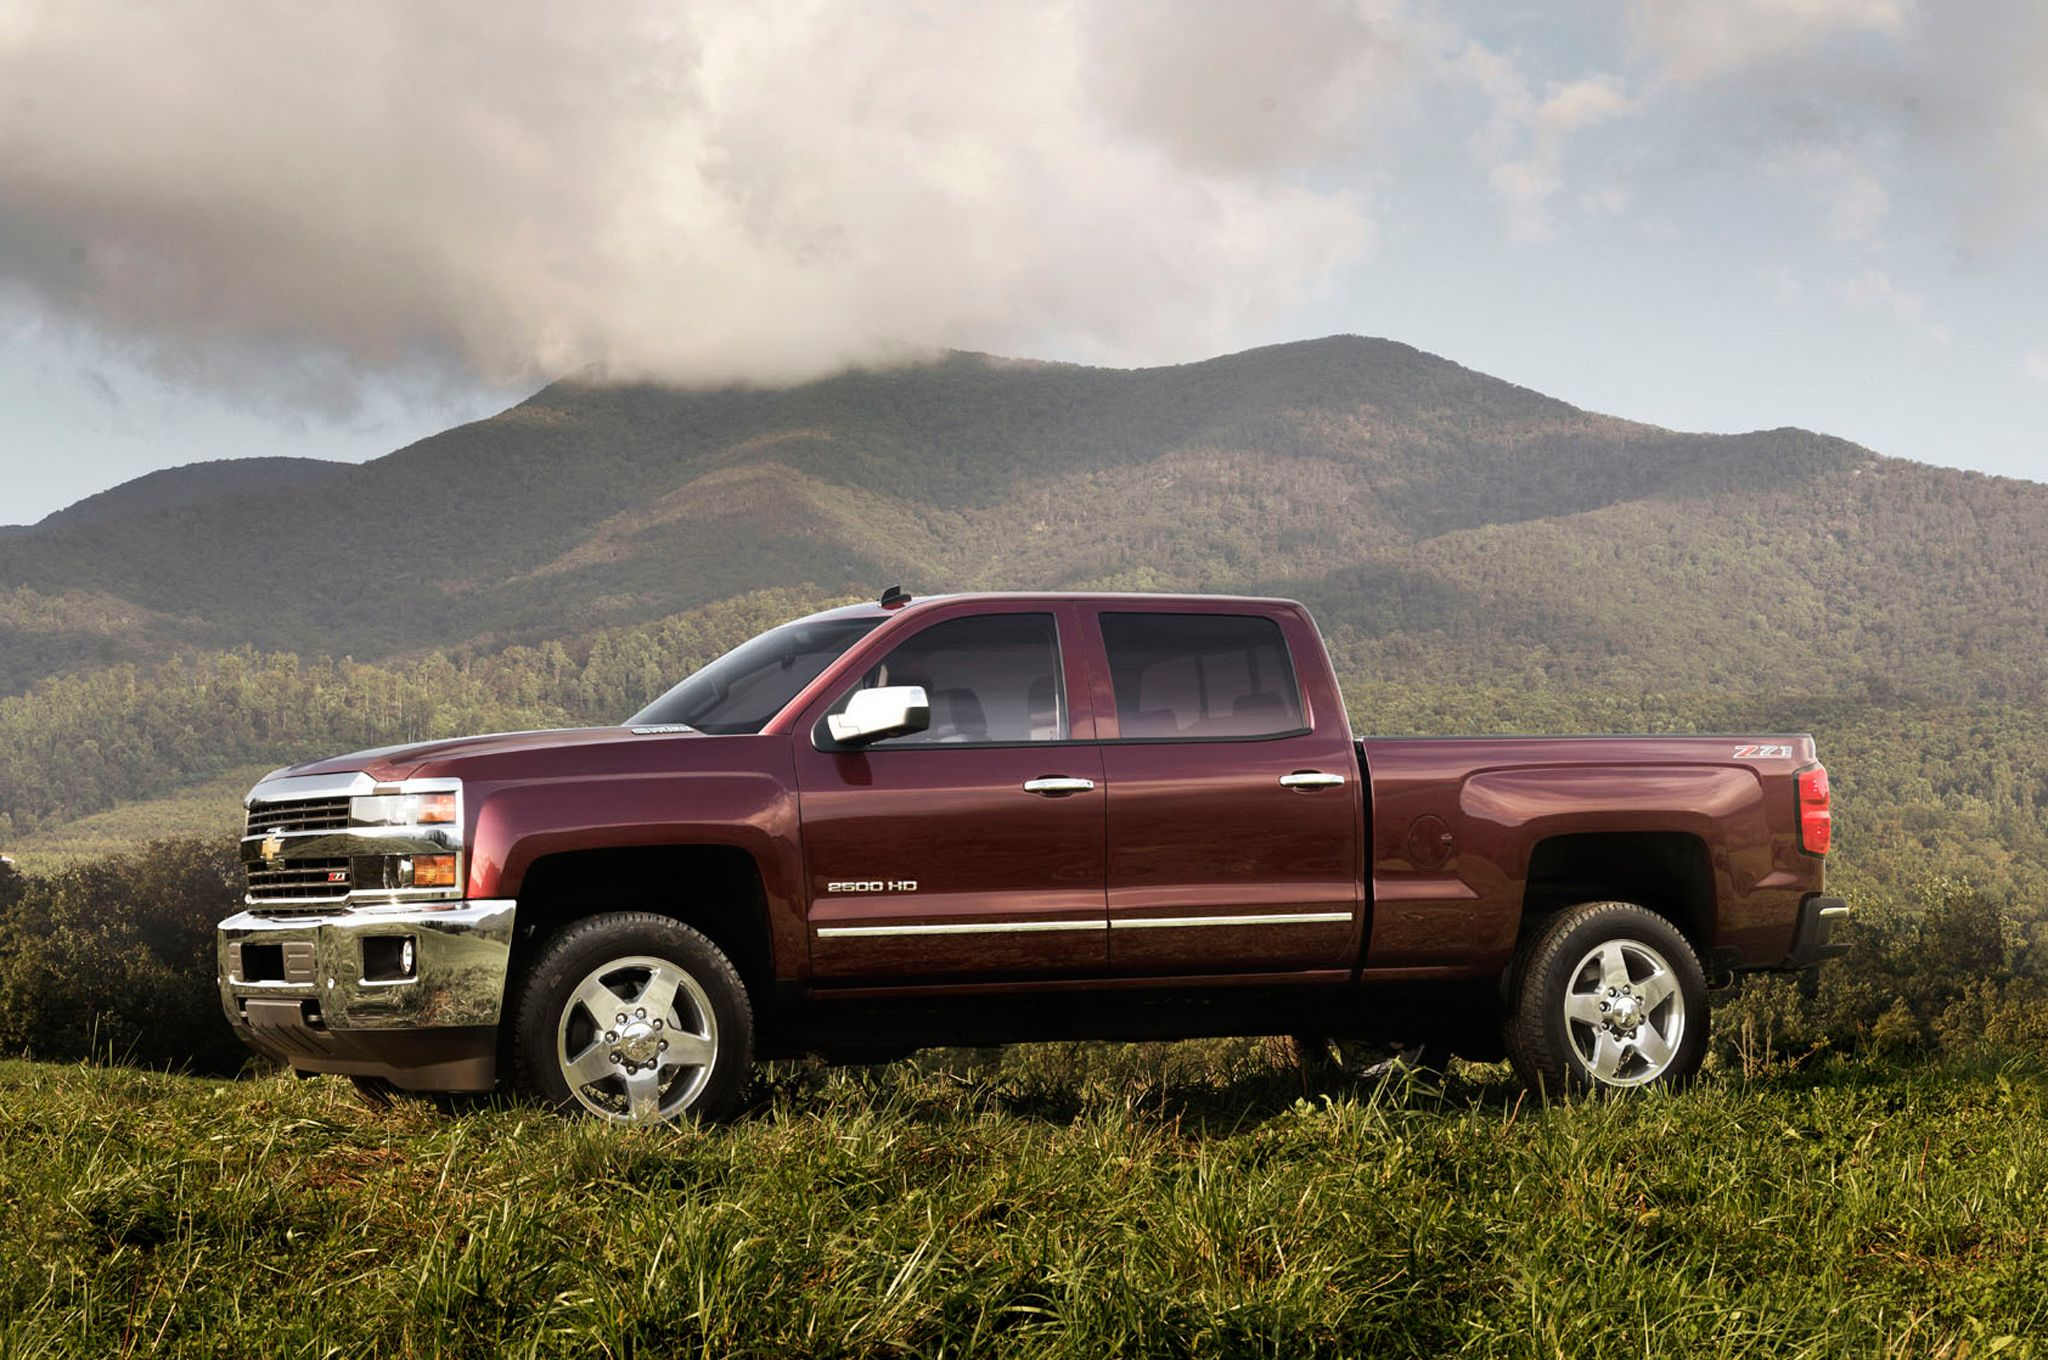 cab view articles special chevrolet makes silverado service vehicle informations crew front trucks photos